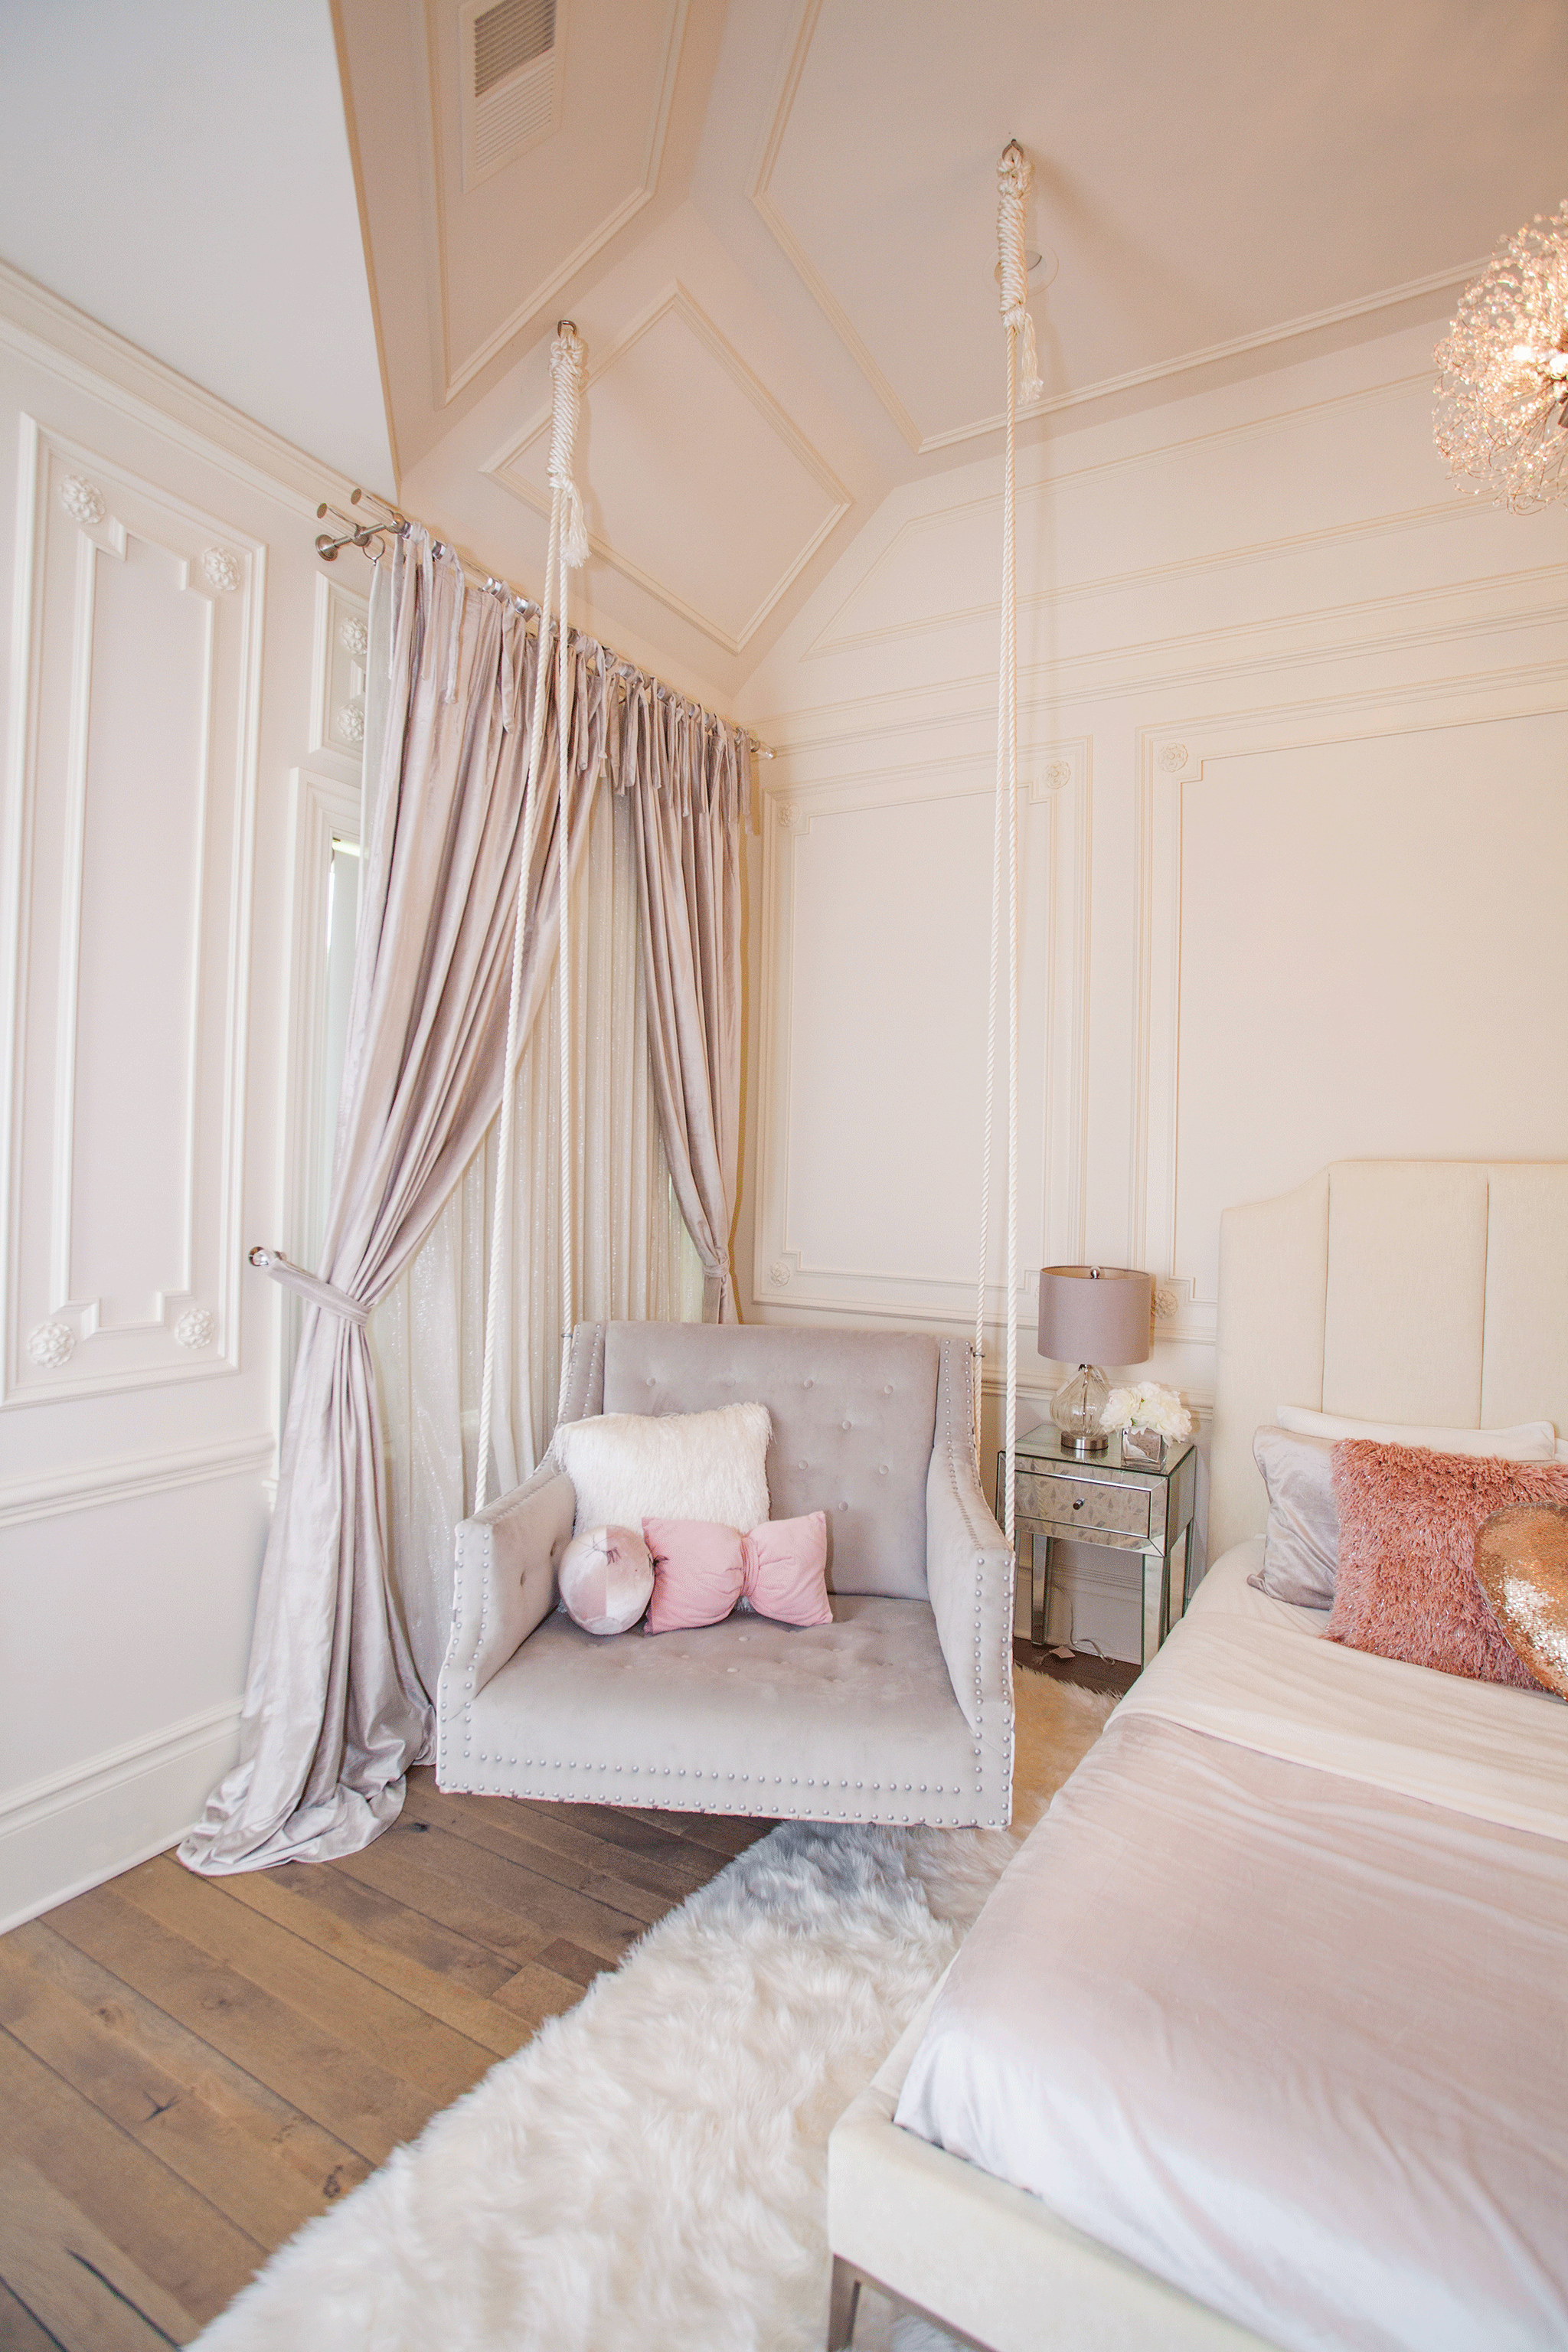 This Luxurious Girl S Room Will Give You Serious Room Envy Project Nursery Room Swing Stylish Bedroom Girl Room